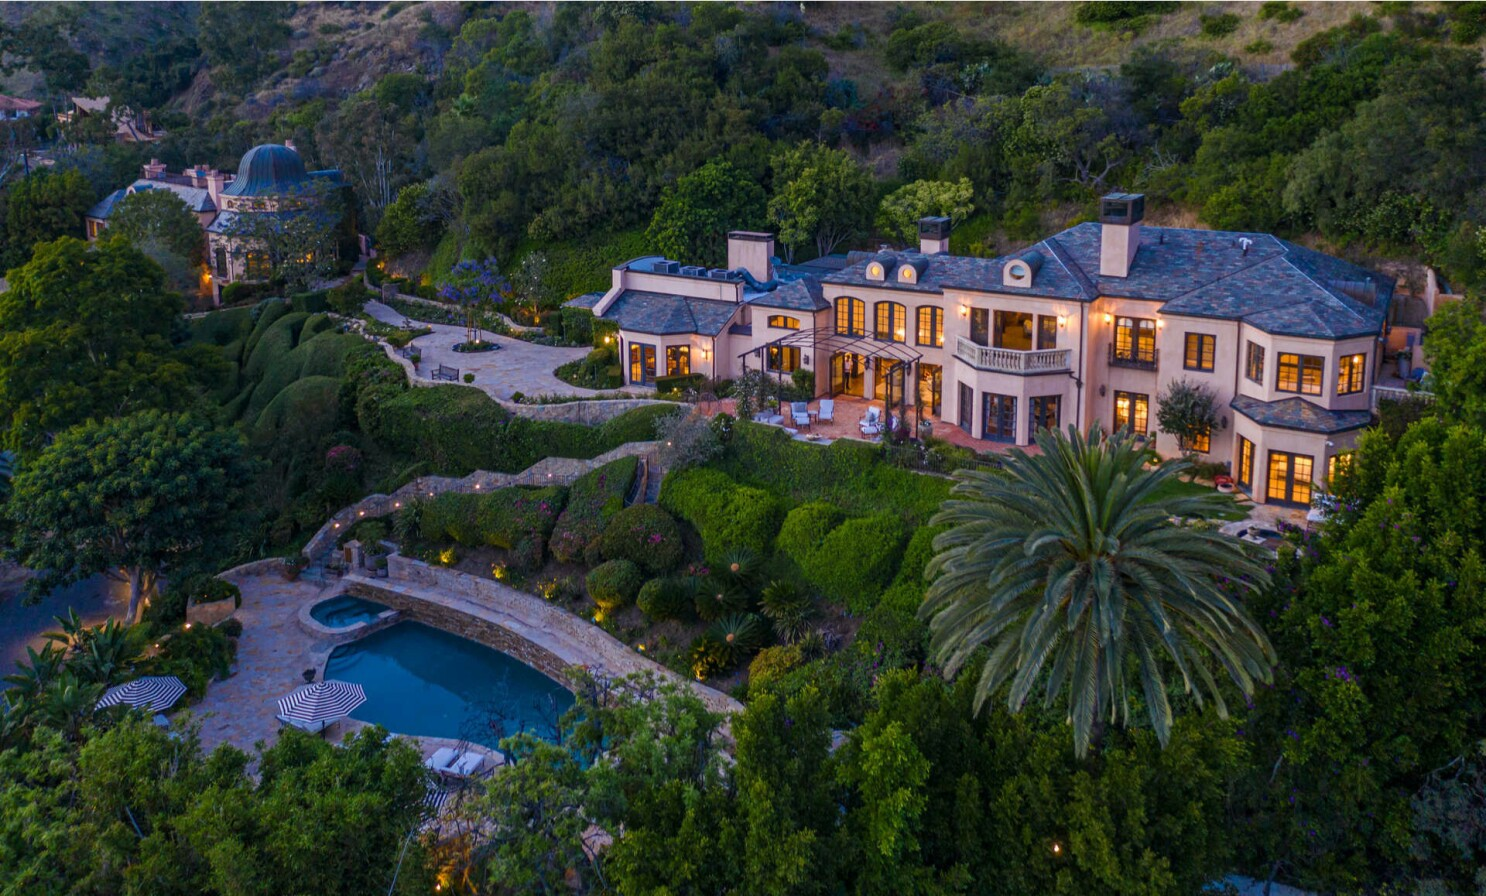 In Malibu, Kelsey and Camille Grammer's former compound aims for $19.95 million - Los Angeles Times